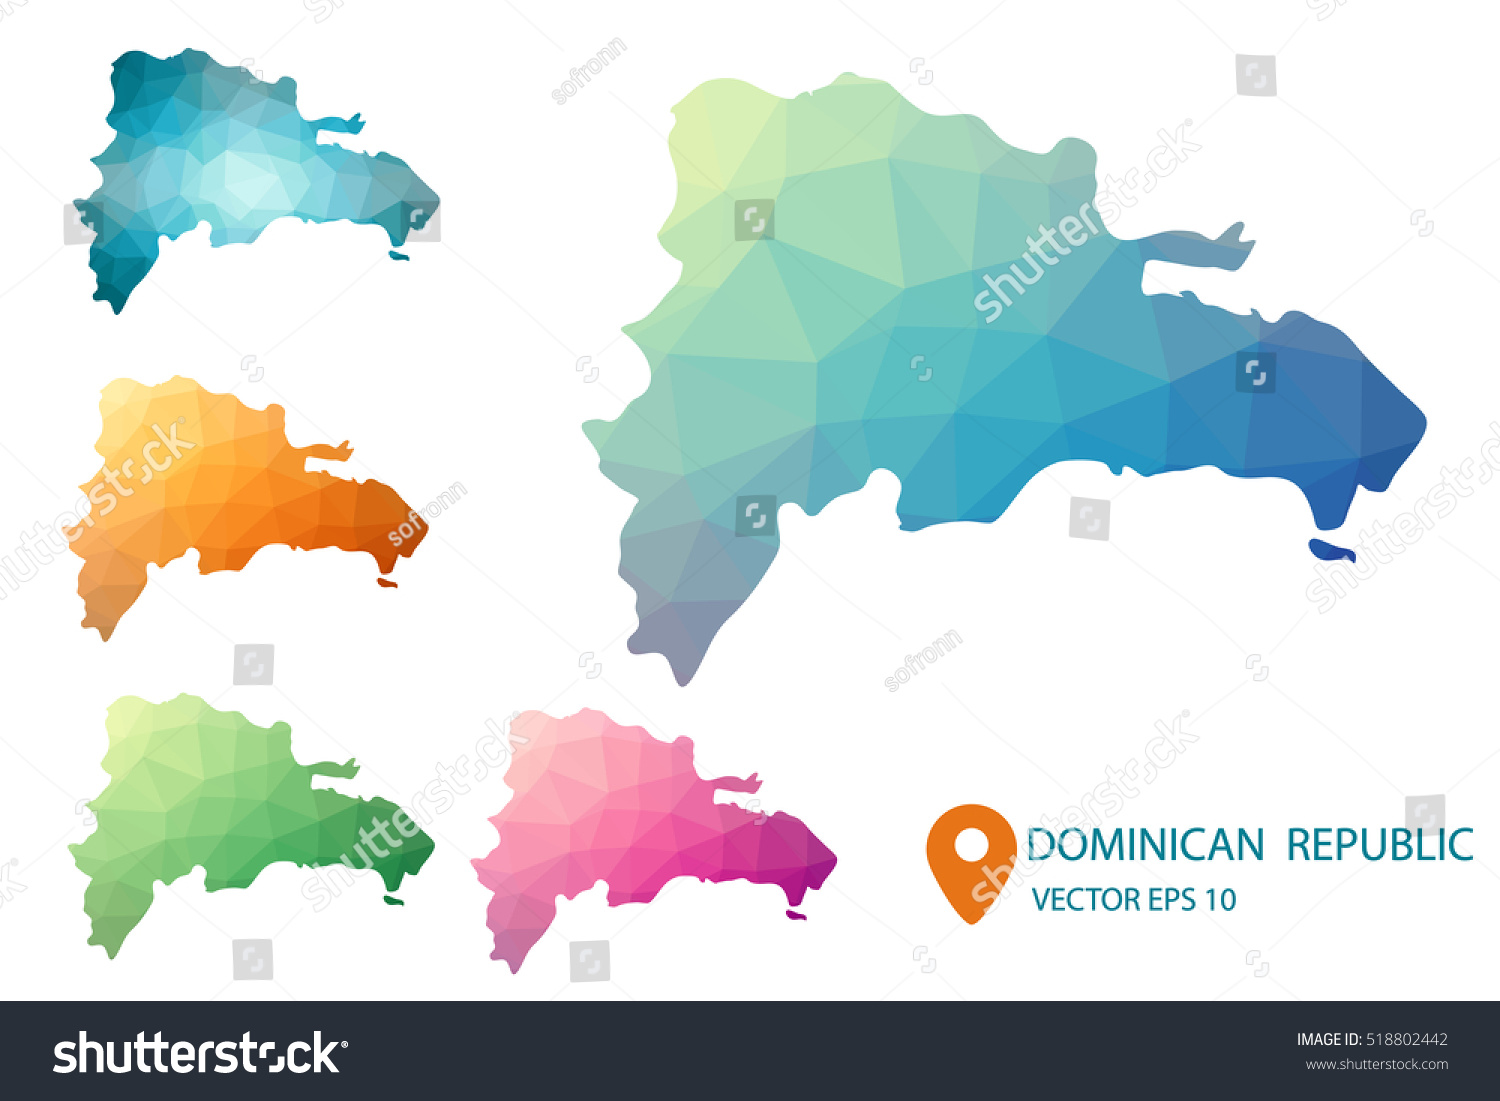 Set Vector Dominican Republic Maps Bright Stock Photo (Photo, Vector ...